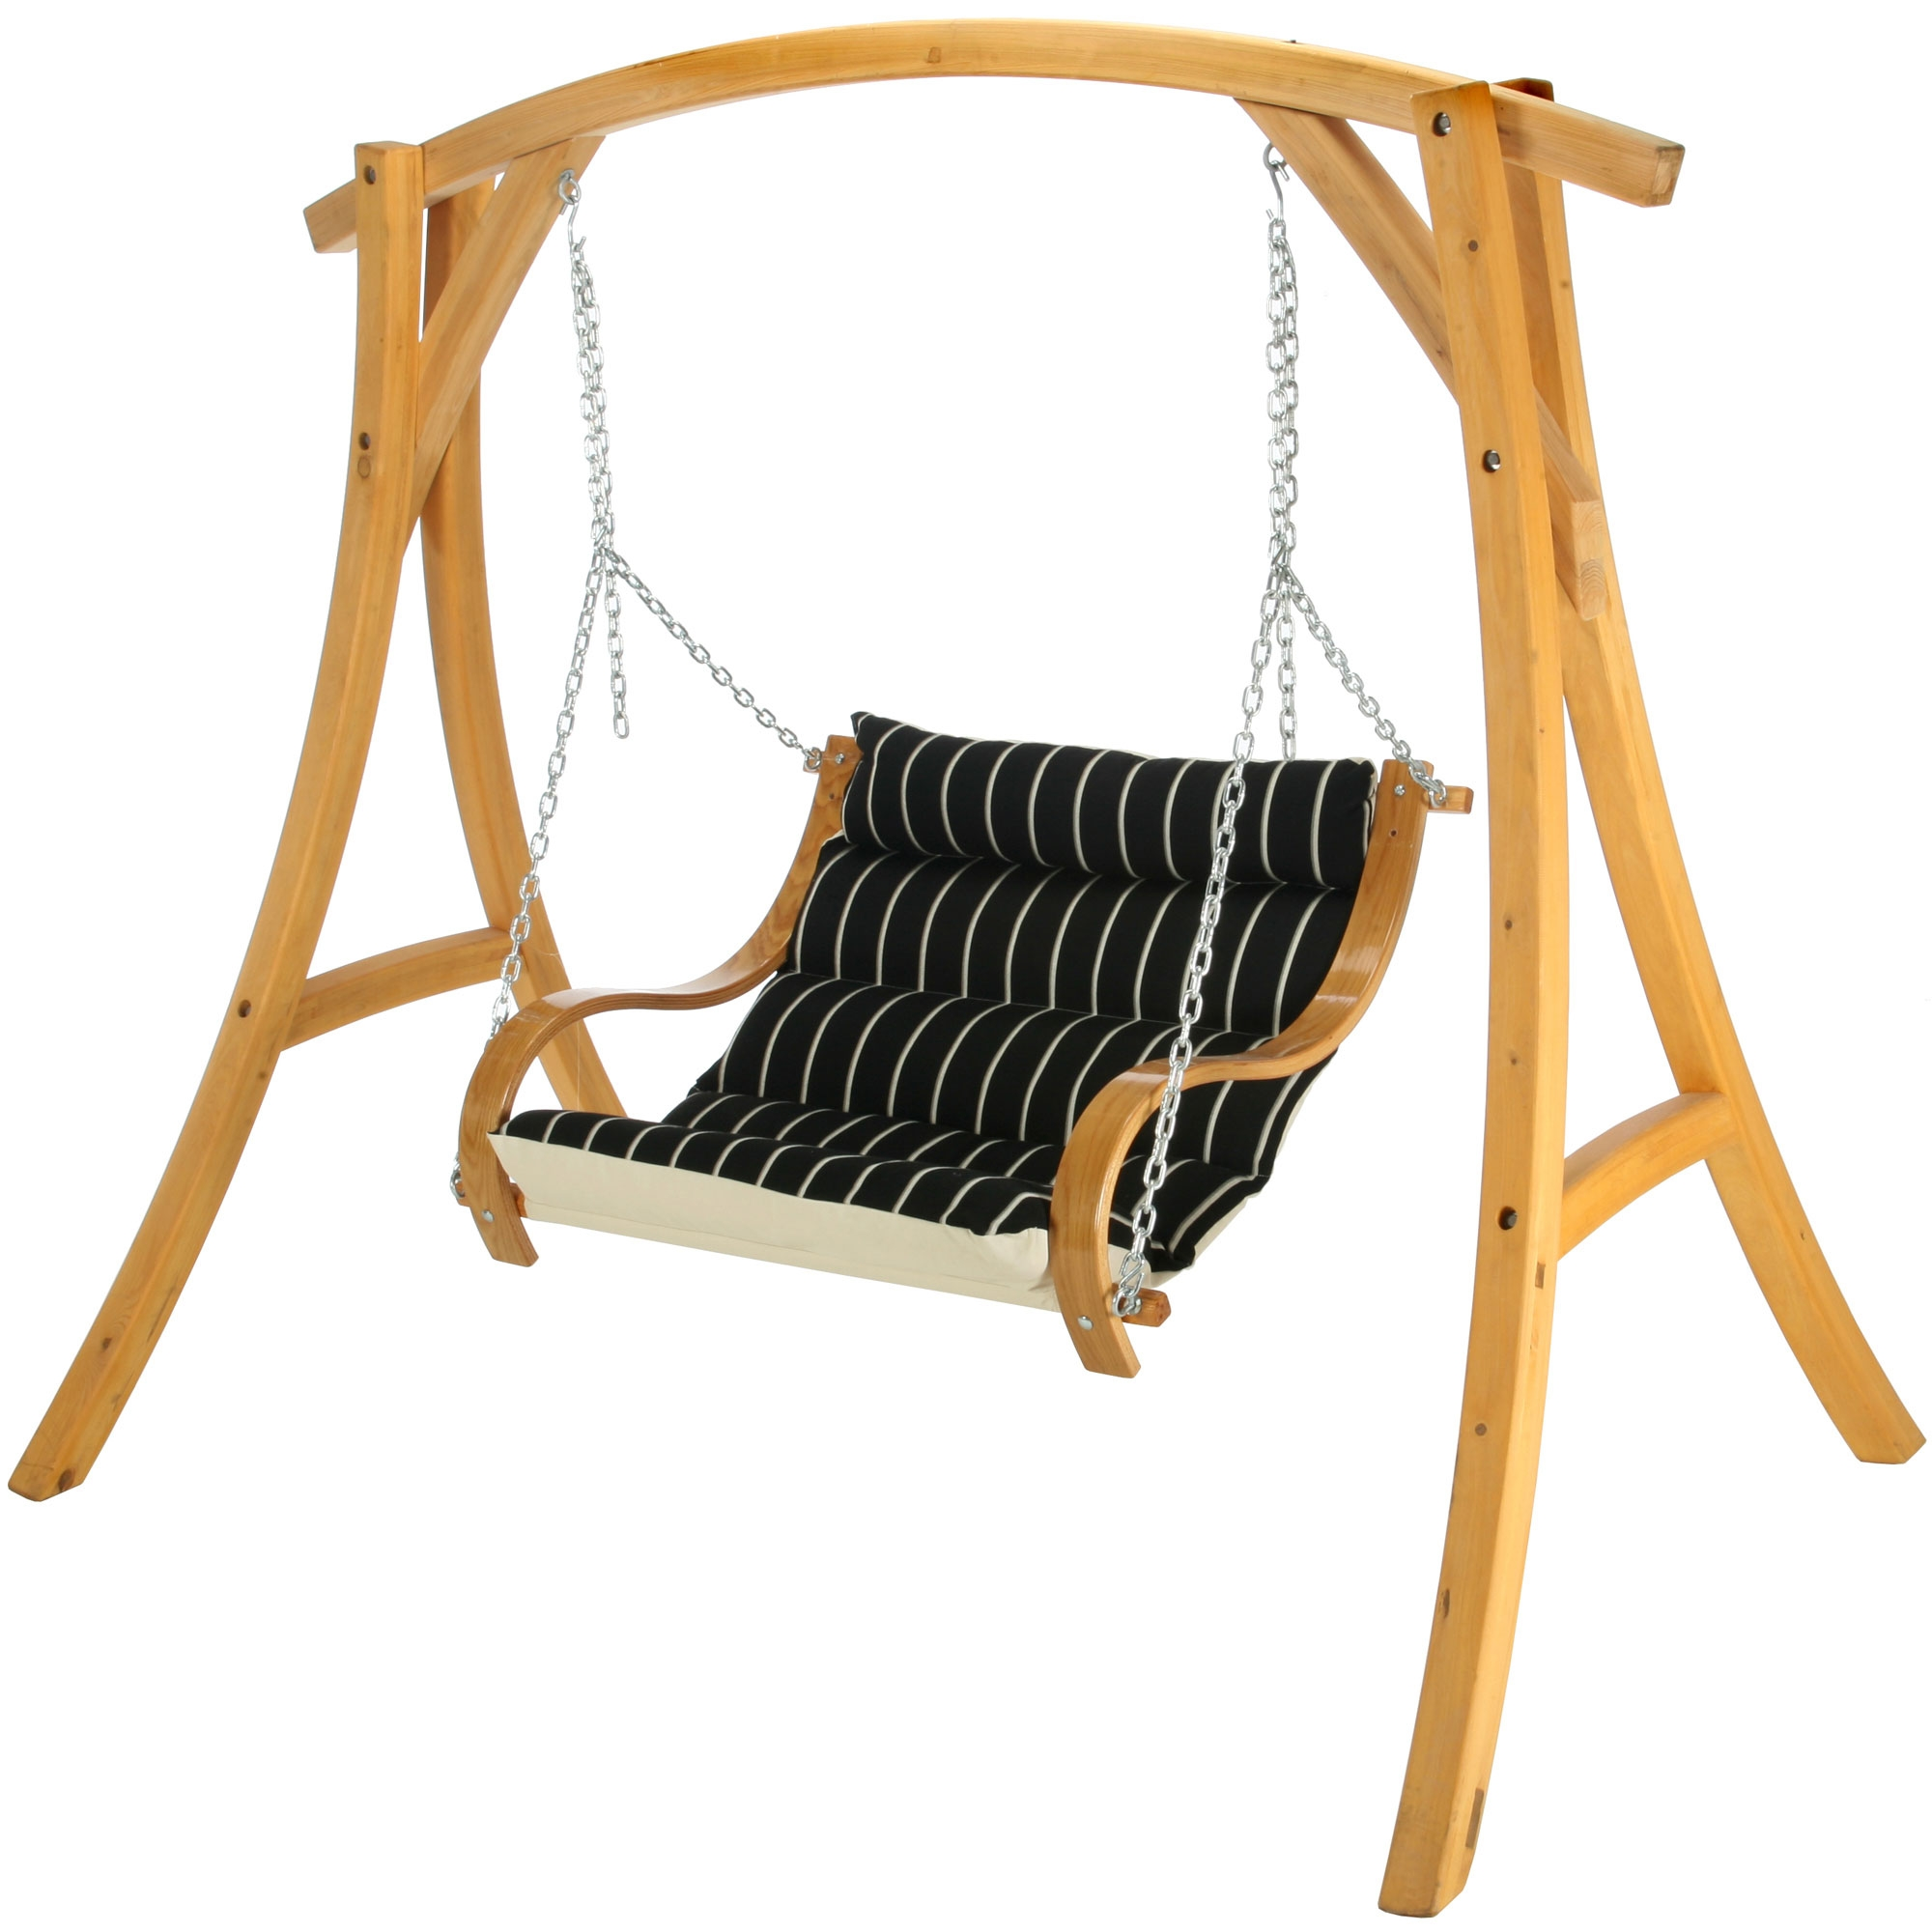 in furniture home ideas hammock hanging fabulous gallery great chair with design planning ebay creative